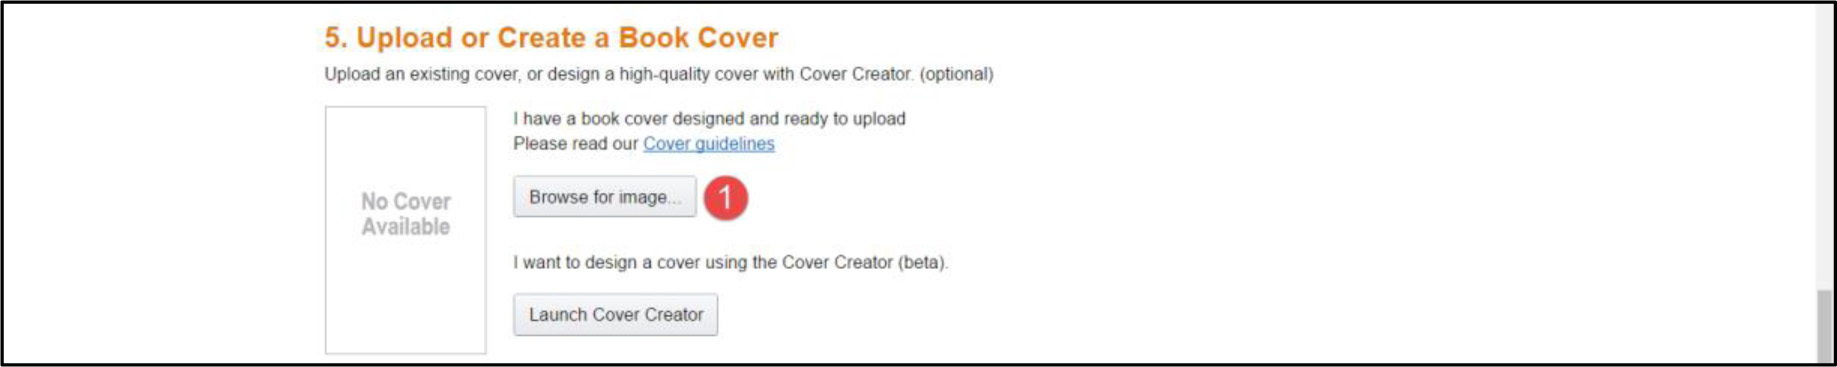 Upload or create book cover